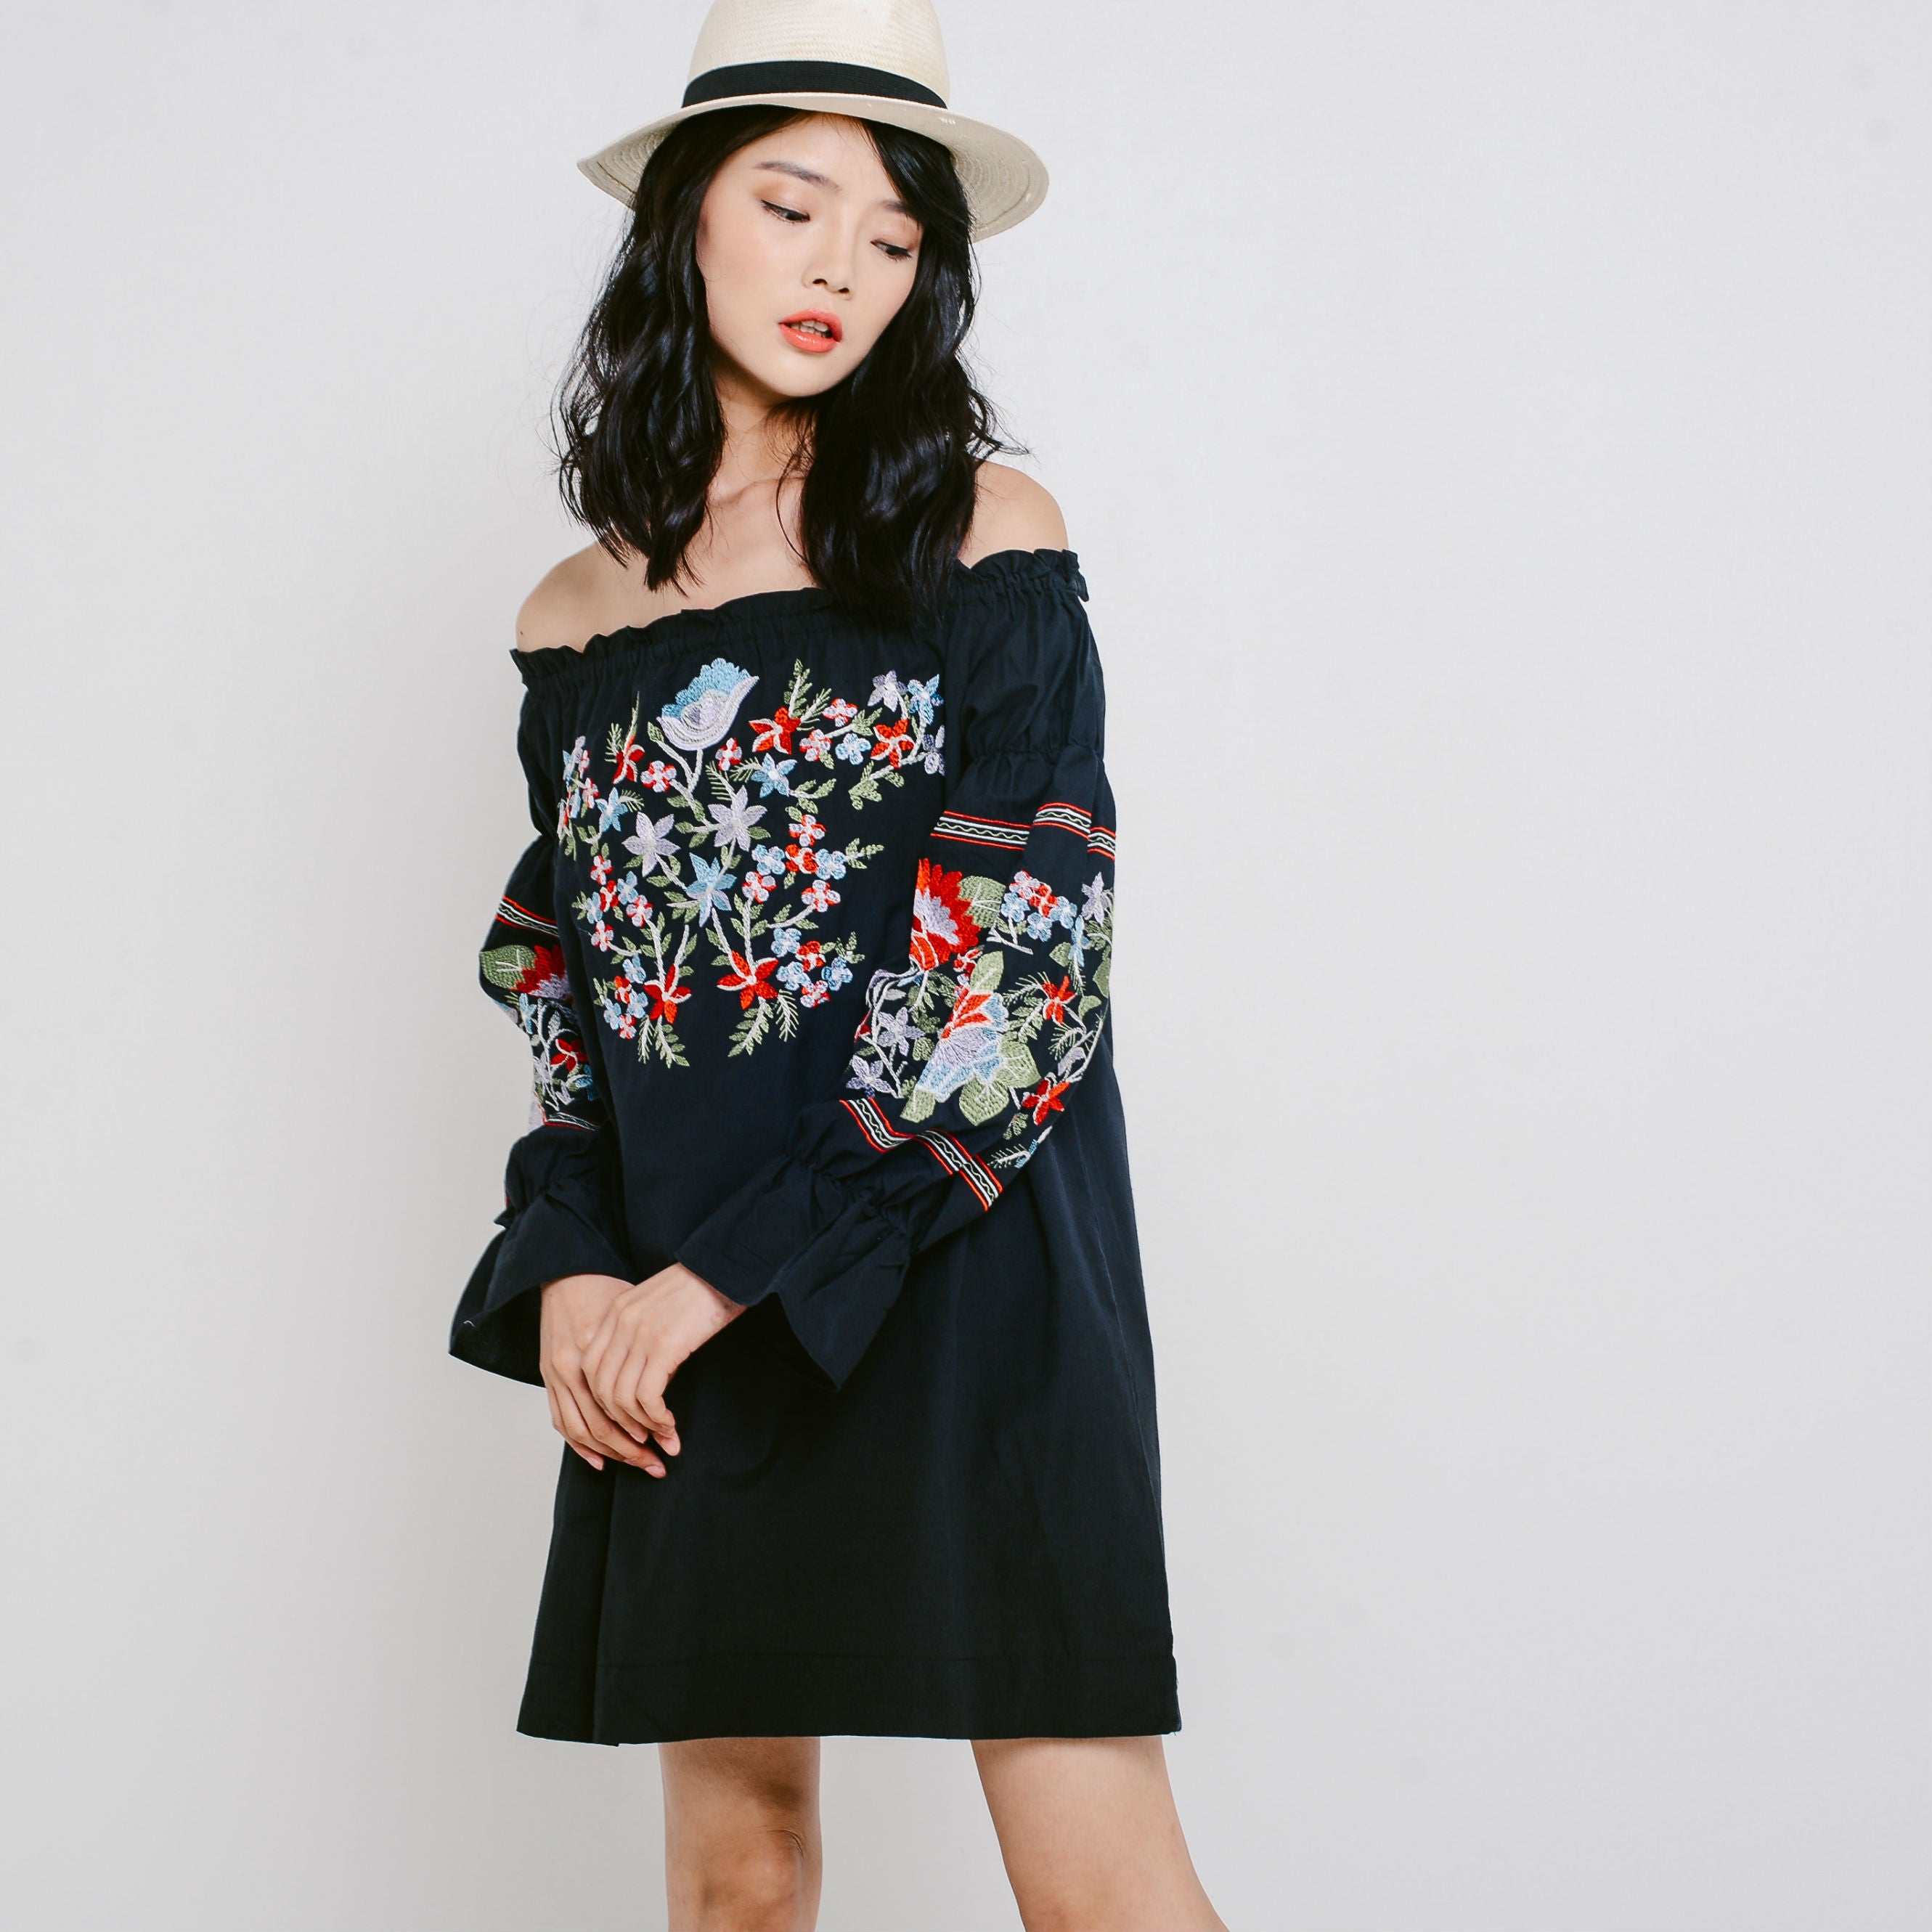 Kayla Embroidered Dress - Greyish Black